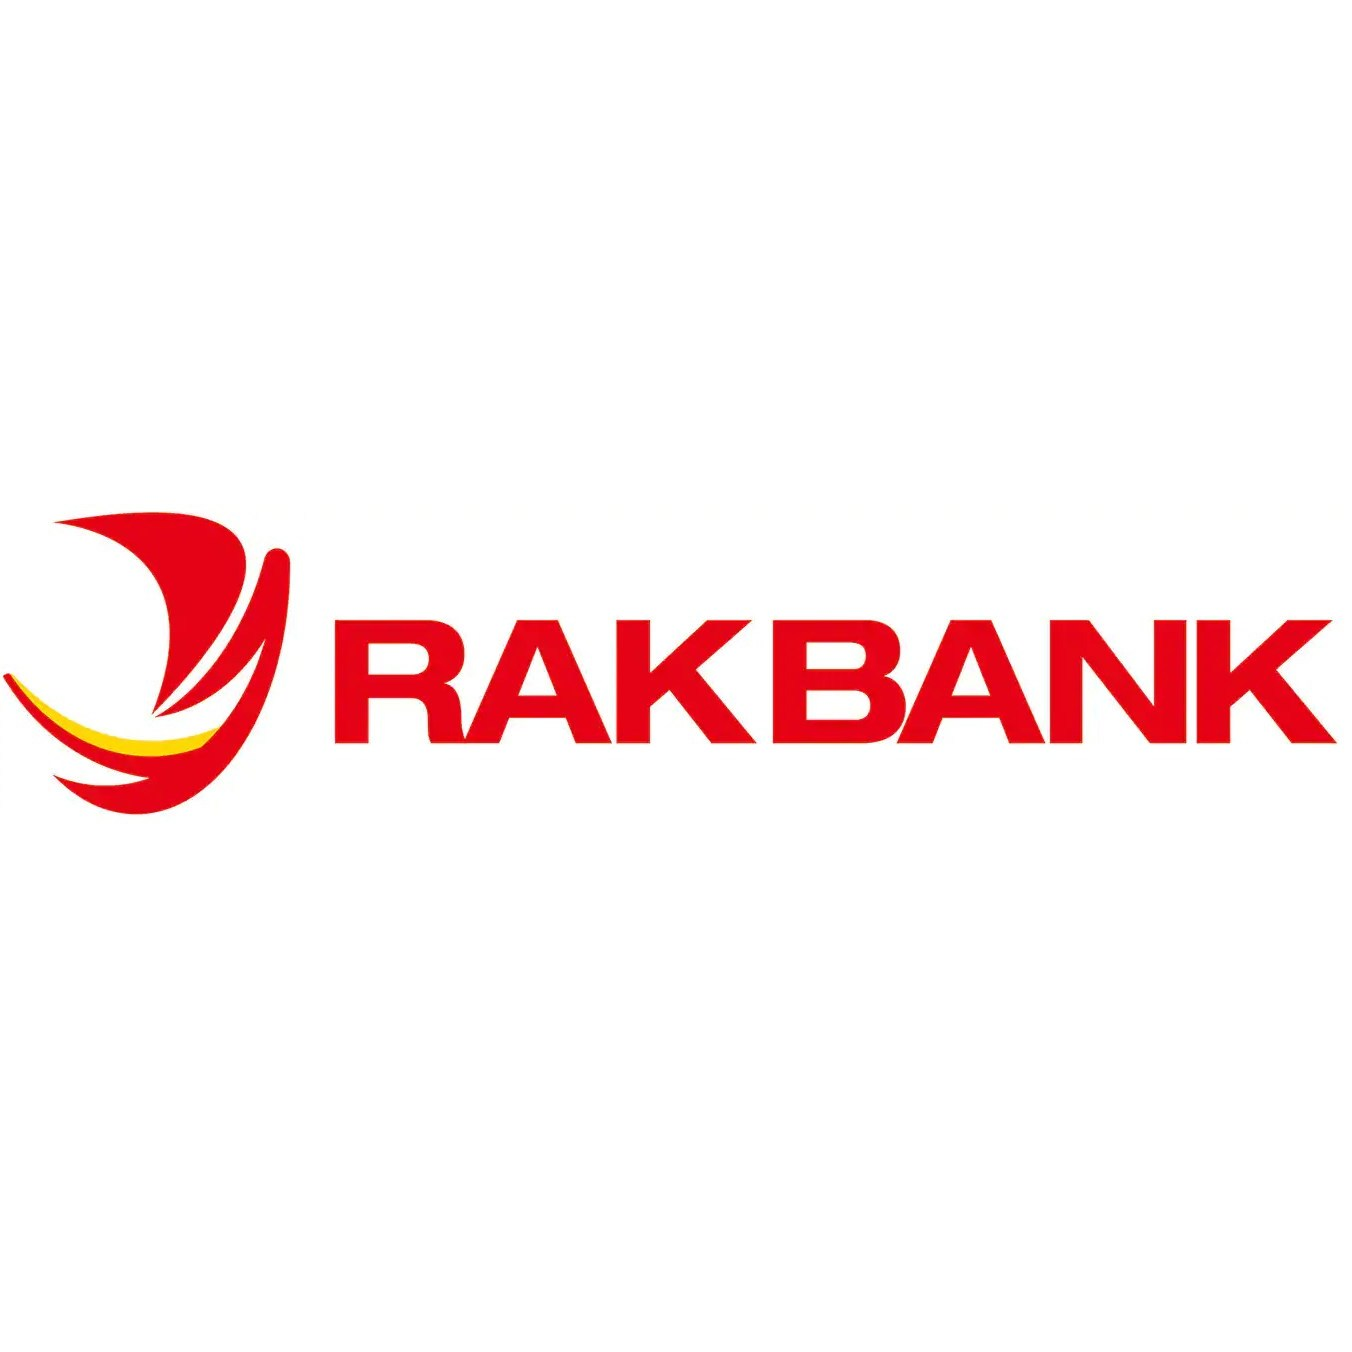 RAKBANK - Current Account